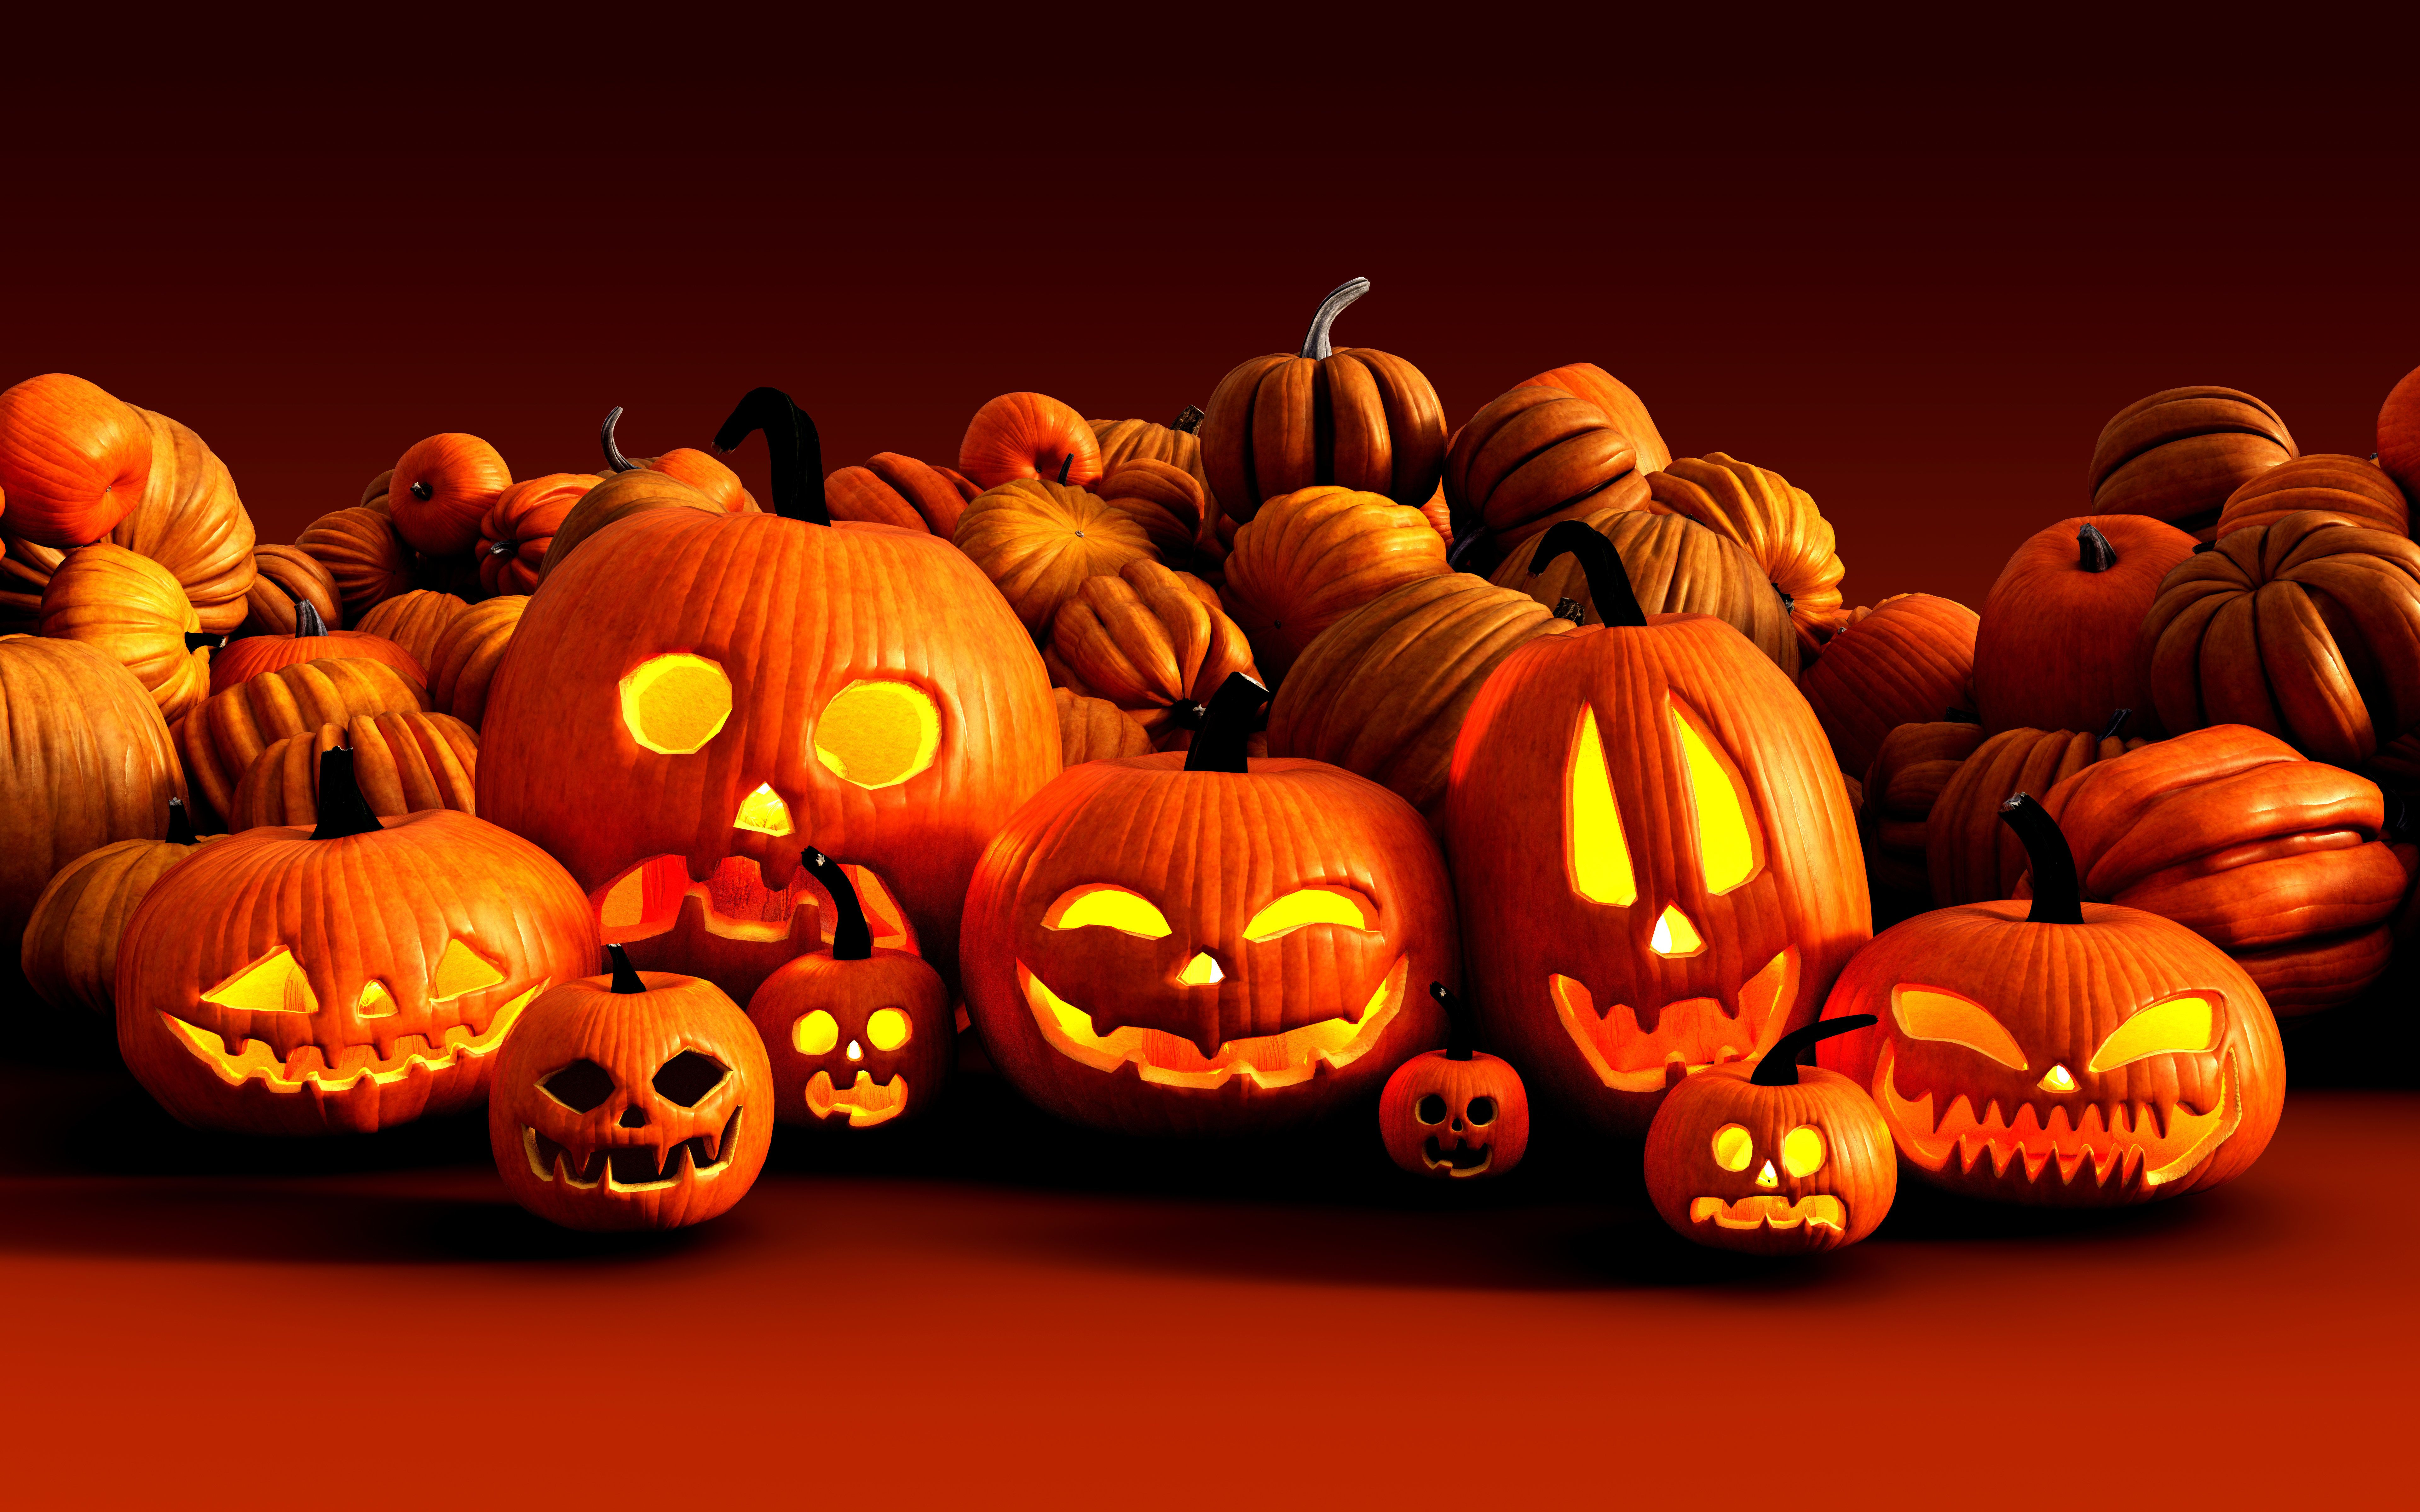 3d Illustration Scary Jack O Lantern Halloween Pumpkins on Farmer's Market